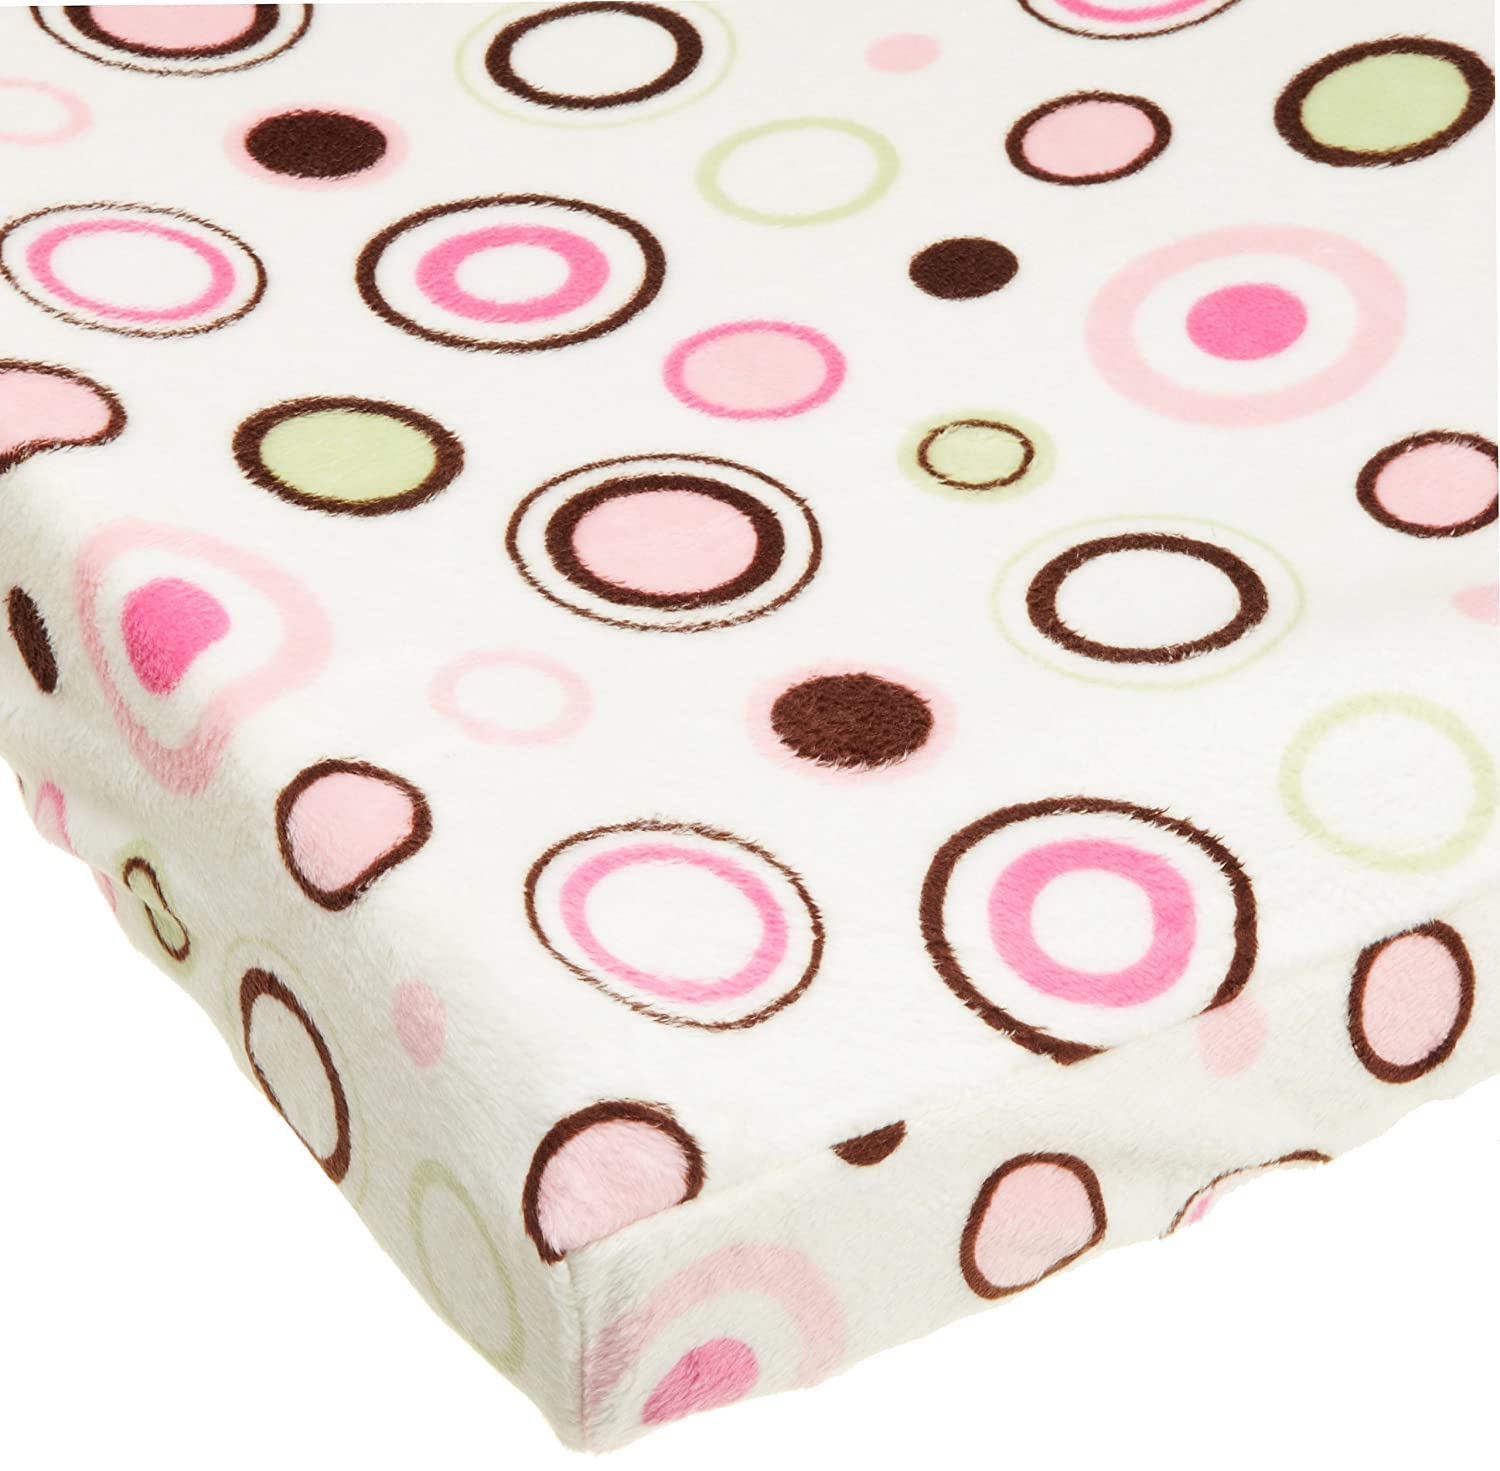 Carters Super Soft Printed Changing Pad Cover, Pink Circles (Discontinued by Manufacturer)